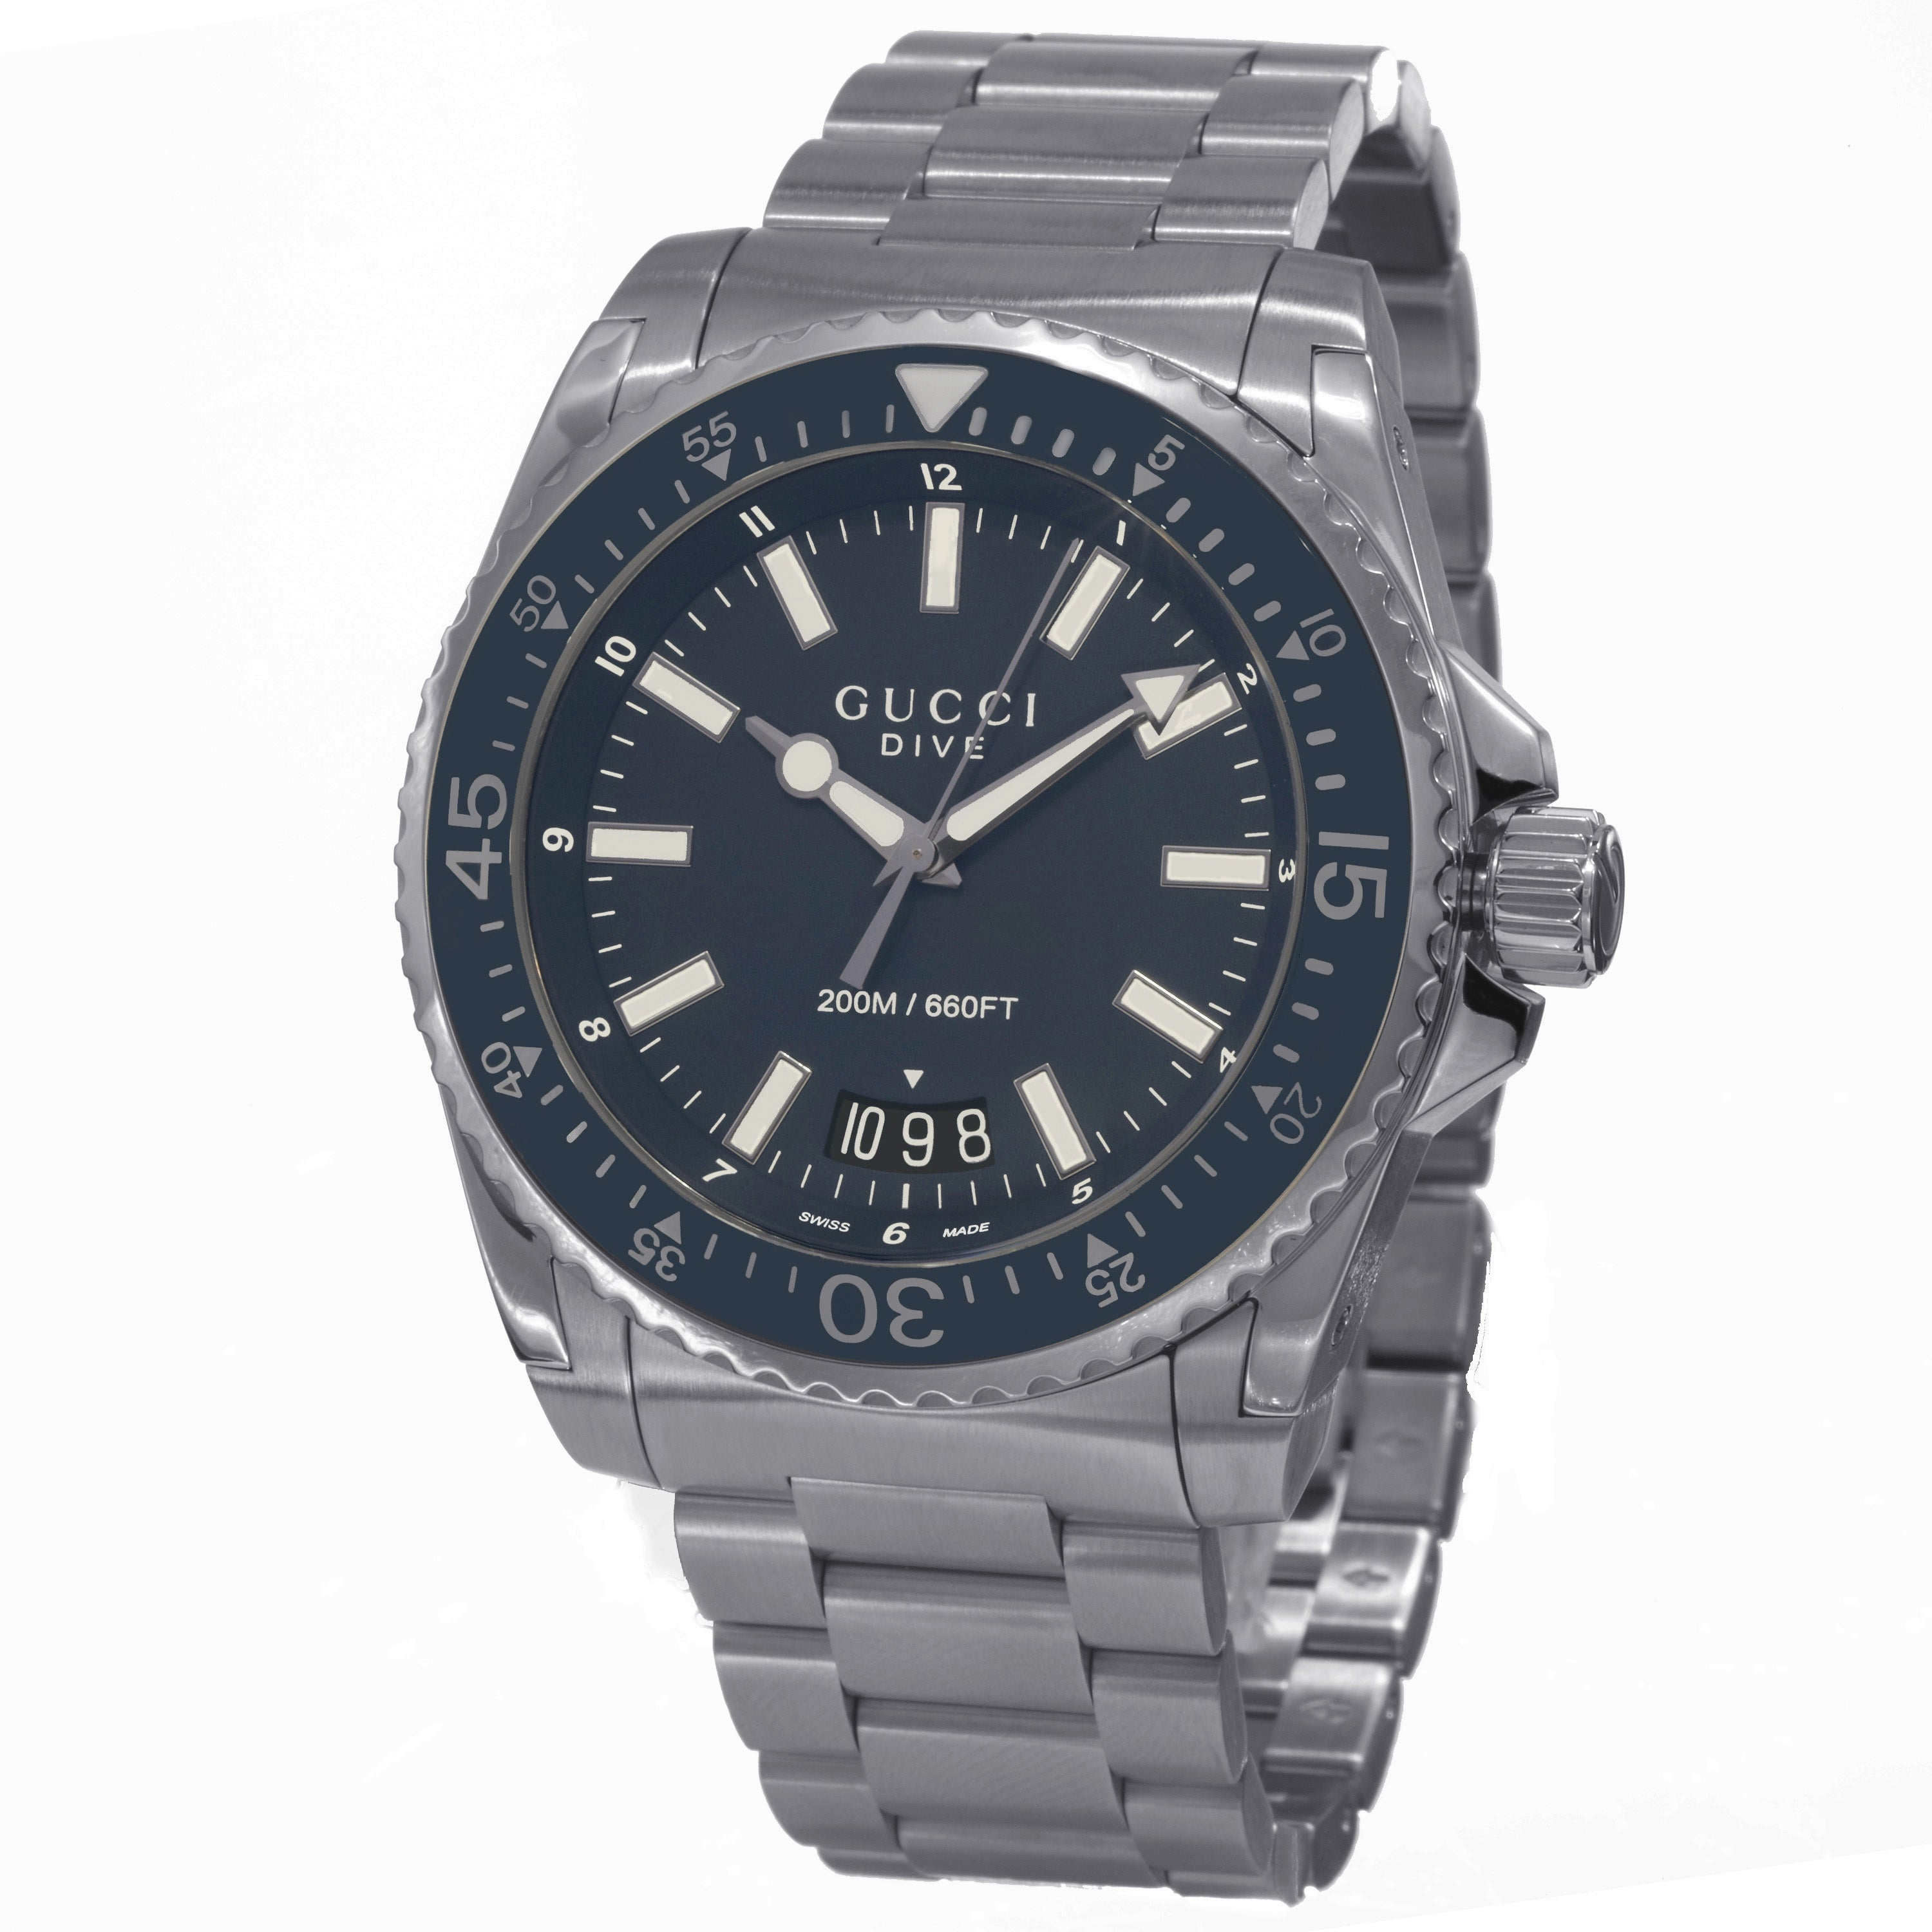 c4ad4a173bb Shop Gucci Men s YA136203  Dive  Blue Dial Stainless Steel Swiss Quartz  Watch - Free Shipping Today - Overstock - 10290520